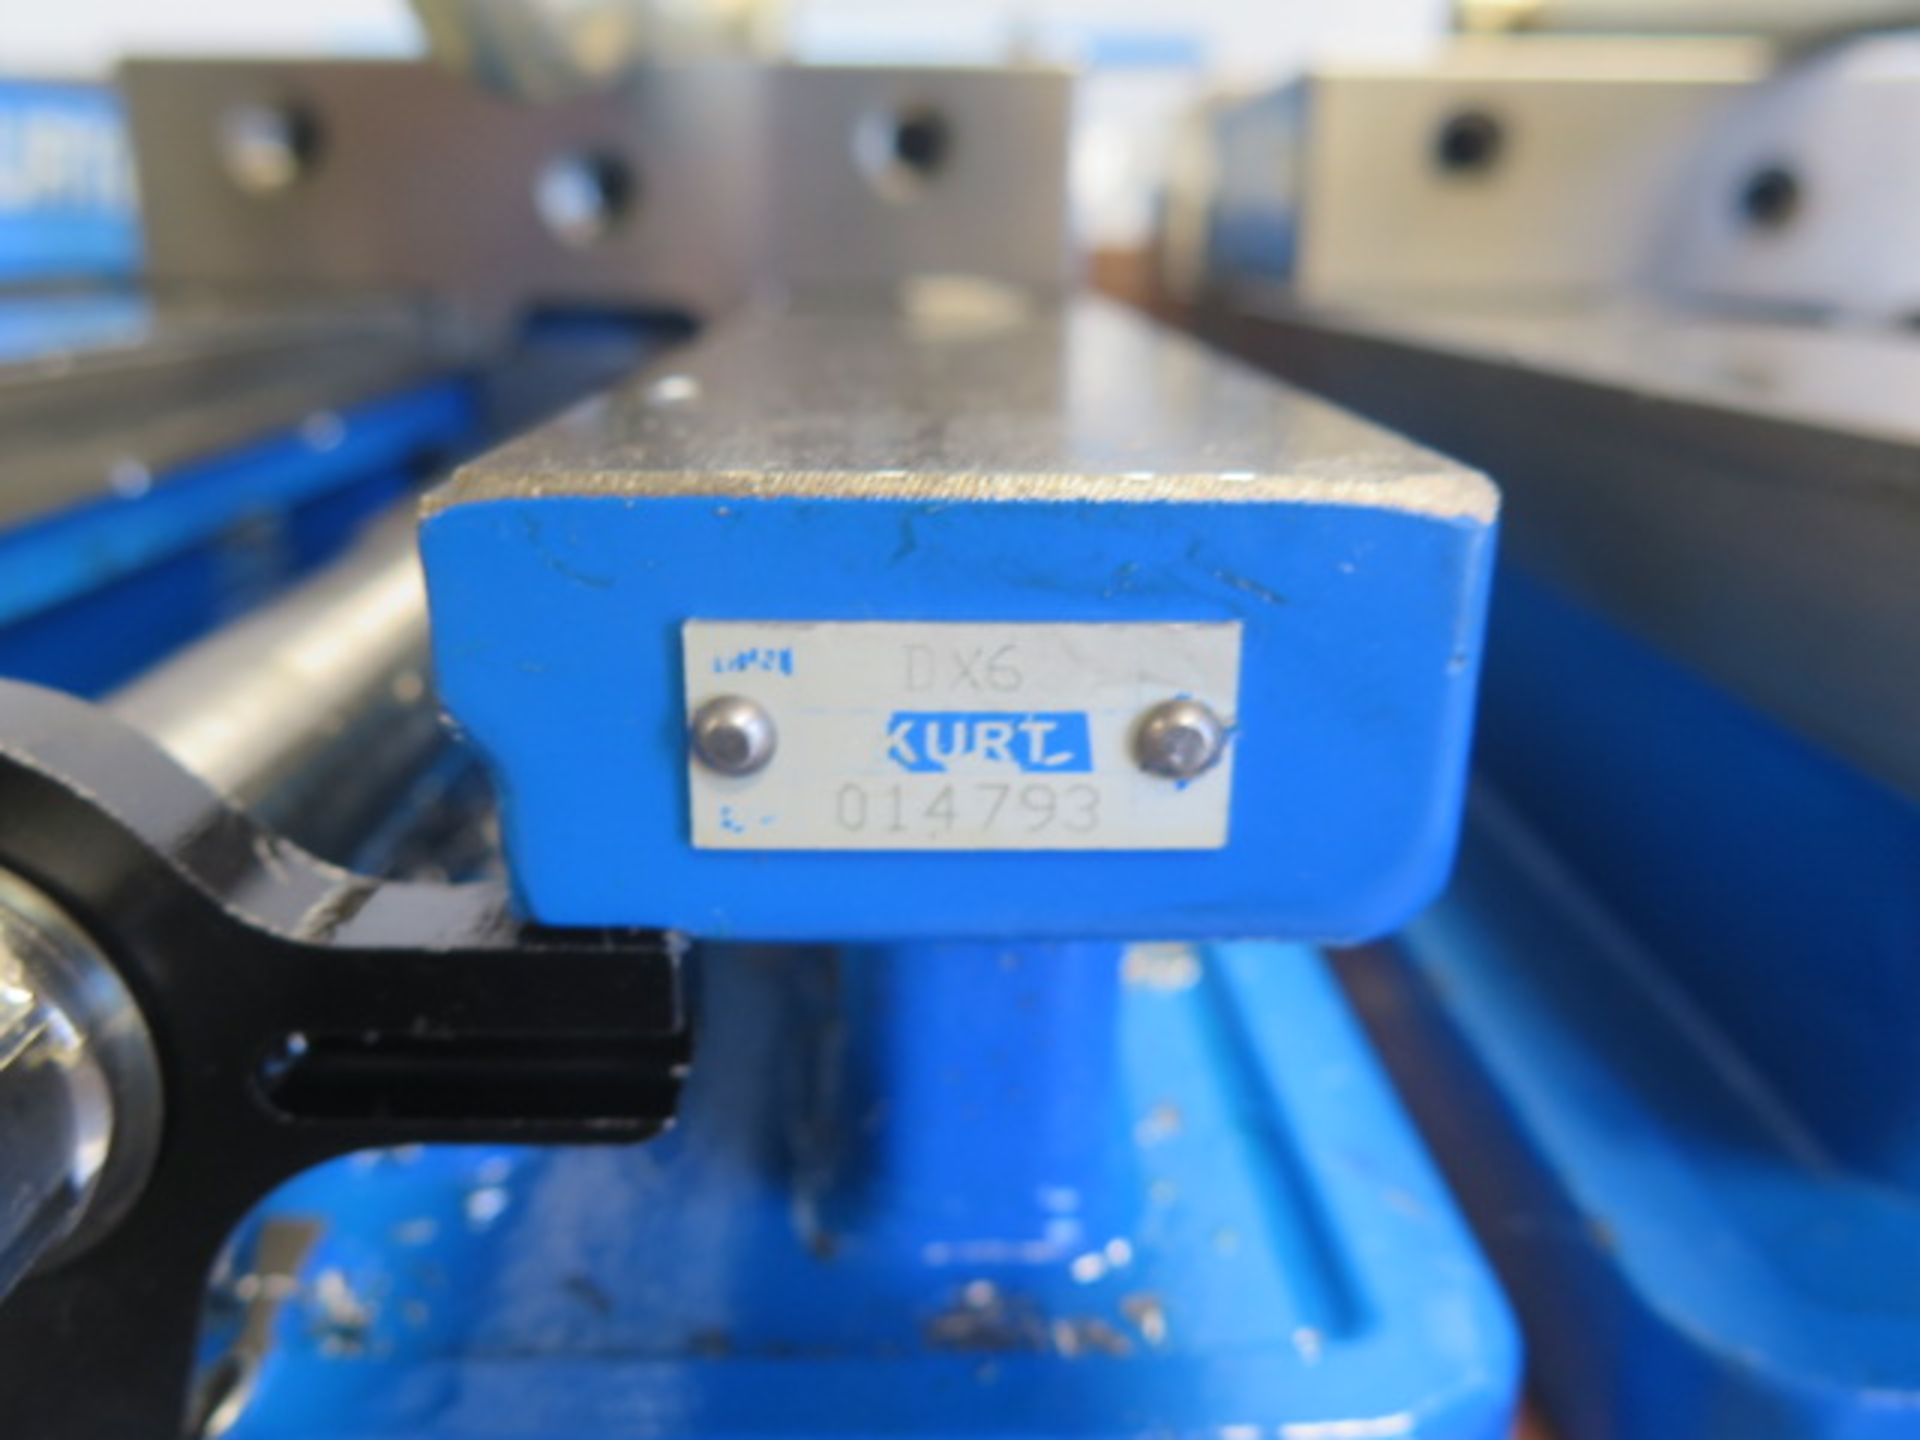 """Kurt DX6 6"""" Angle Lock Vise (SOLD AS-IS - NO WARRANTY) - Image 4 of 4"""